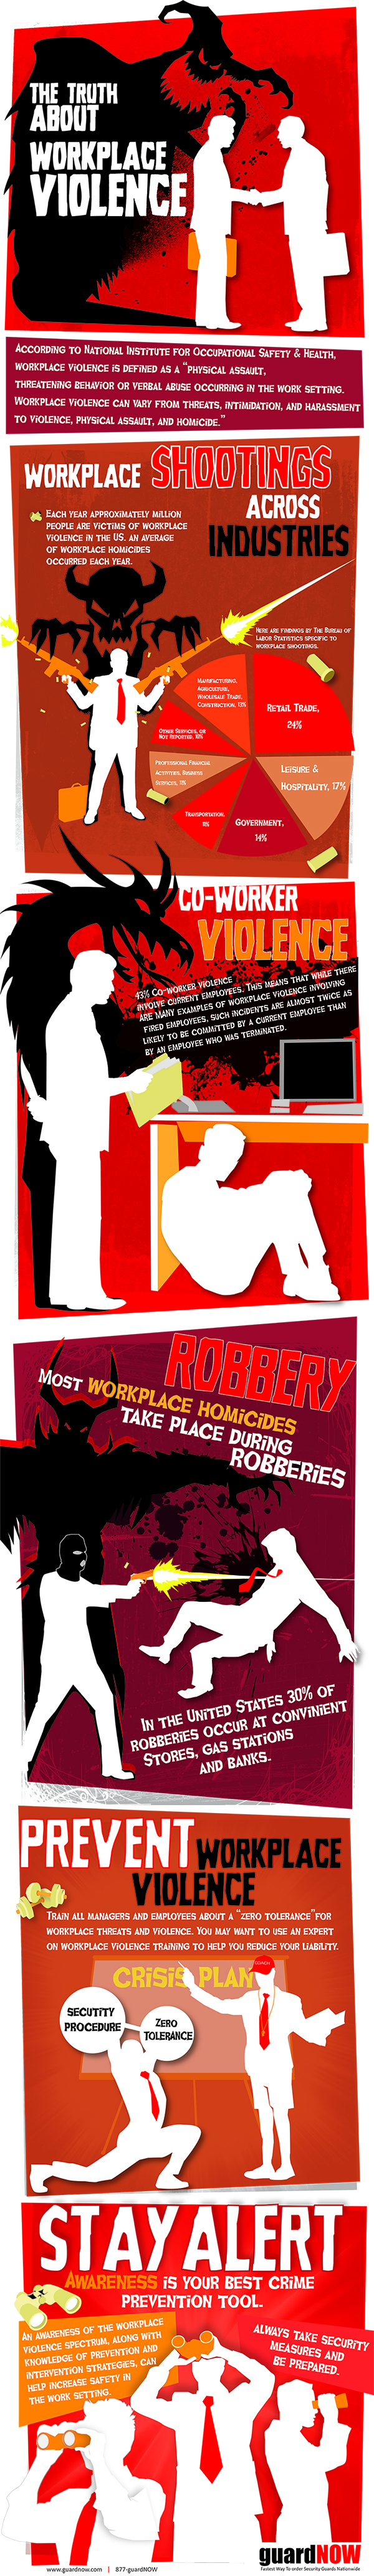 Workplace Violence Facts